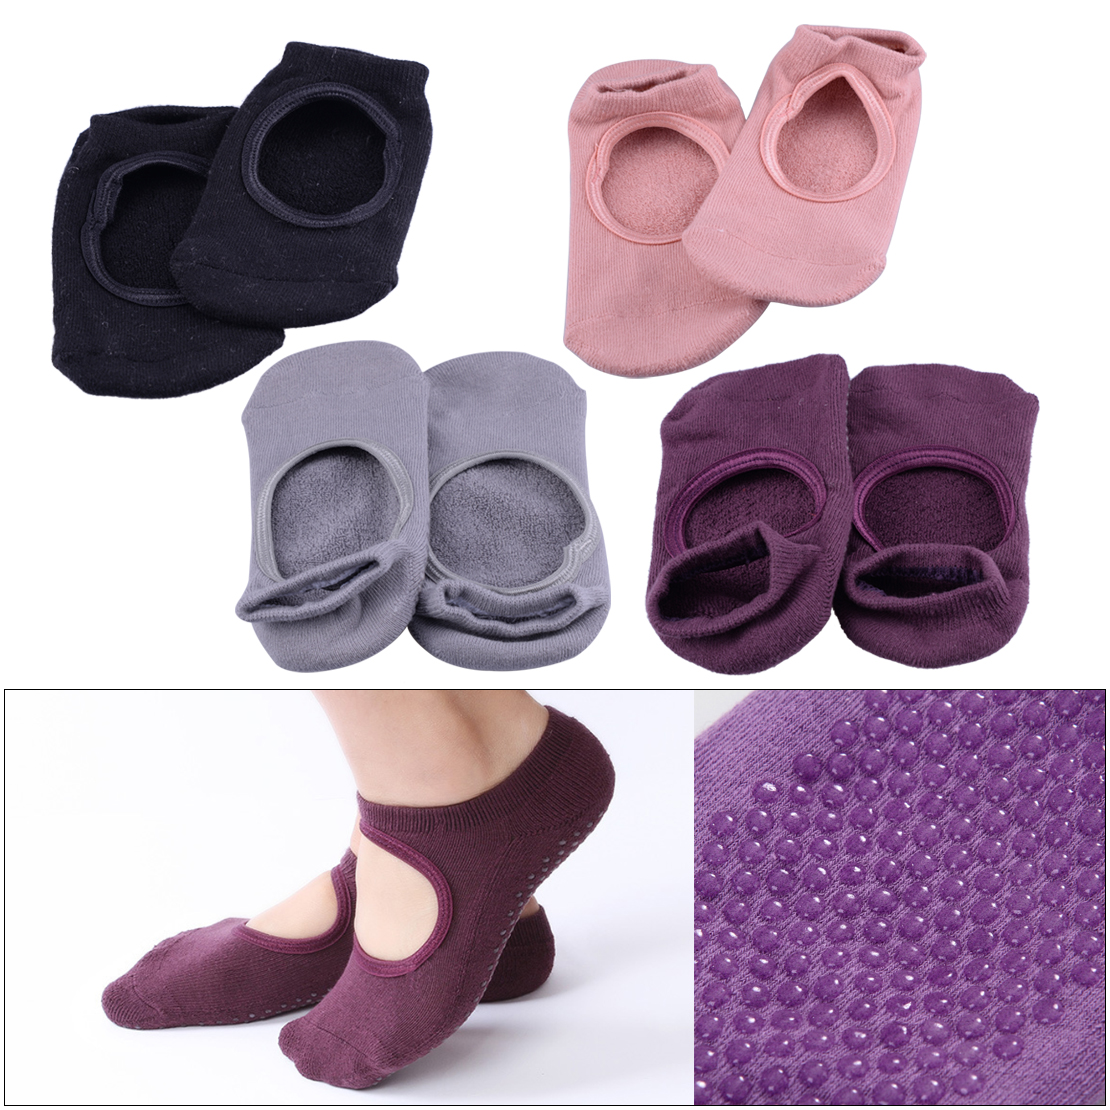 CiciTree 1 Pair Anti-Slip Breathable Socks Women Barre Pilates Fitness Dancing Heel Non Slip Cotton Sock